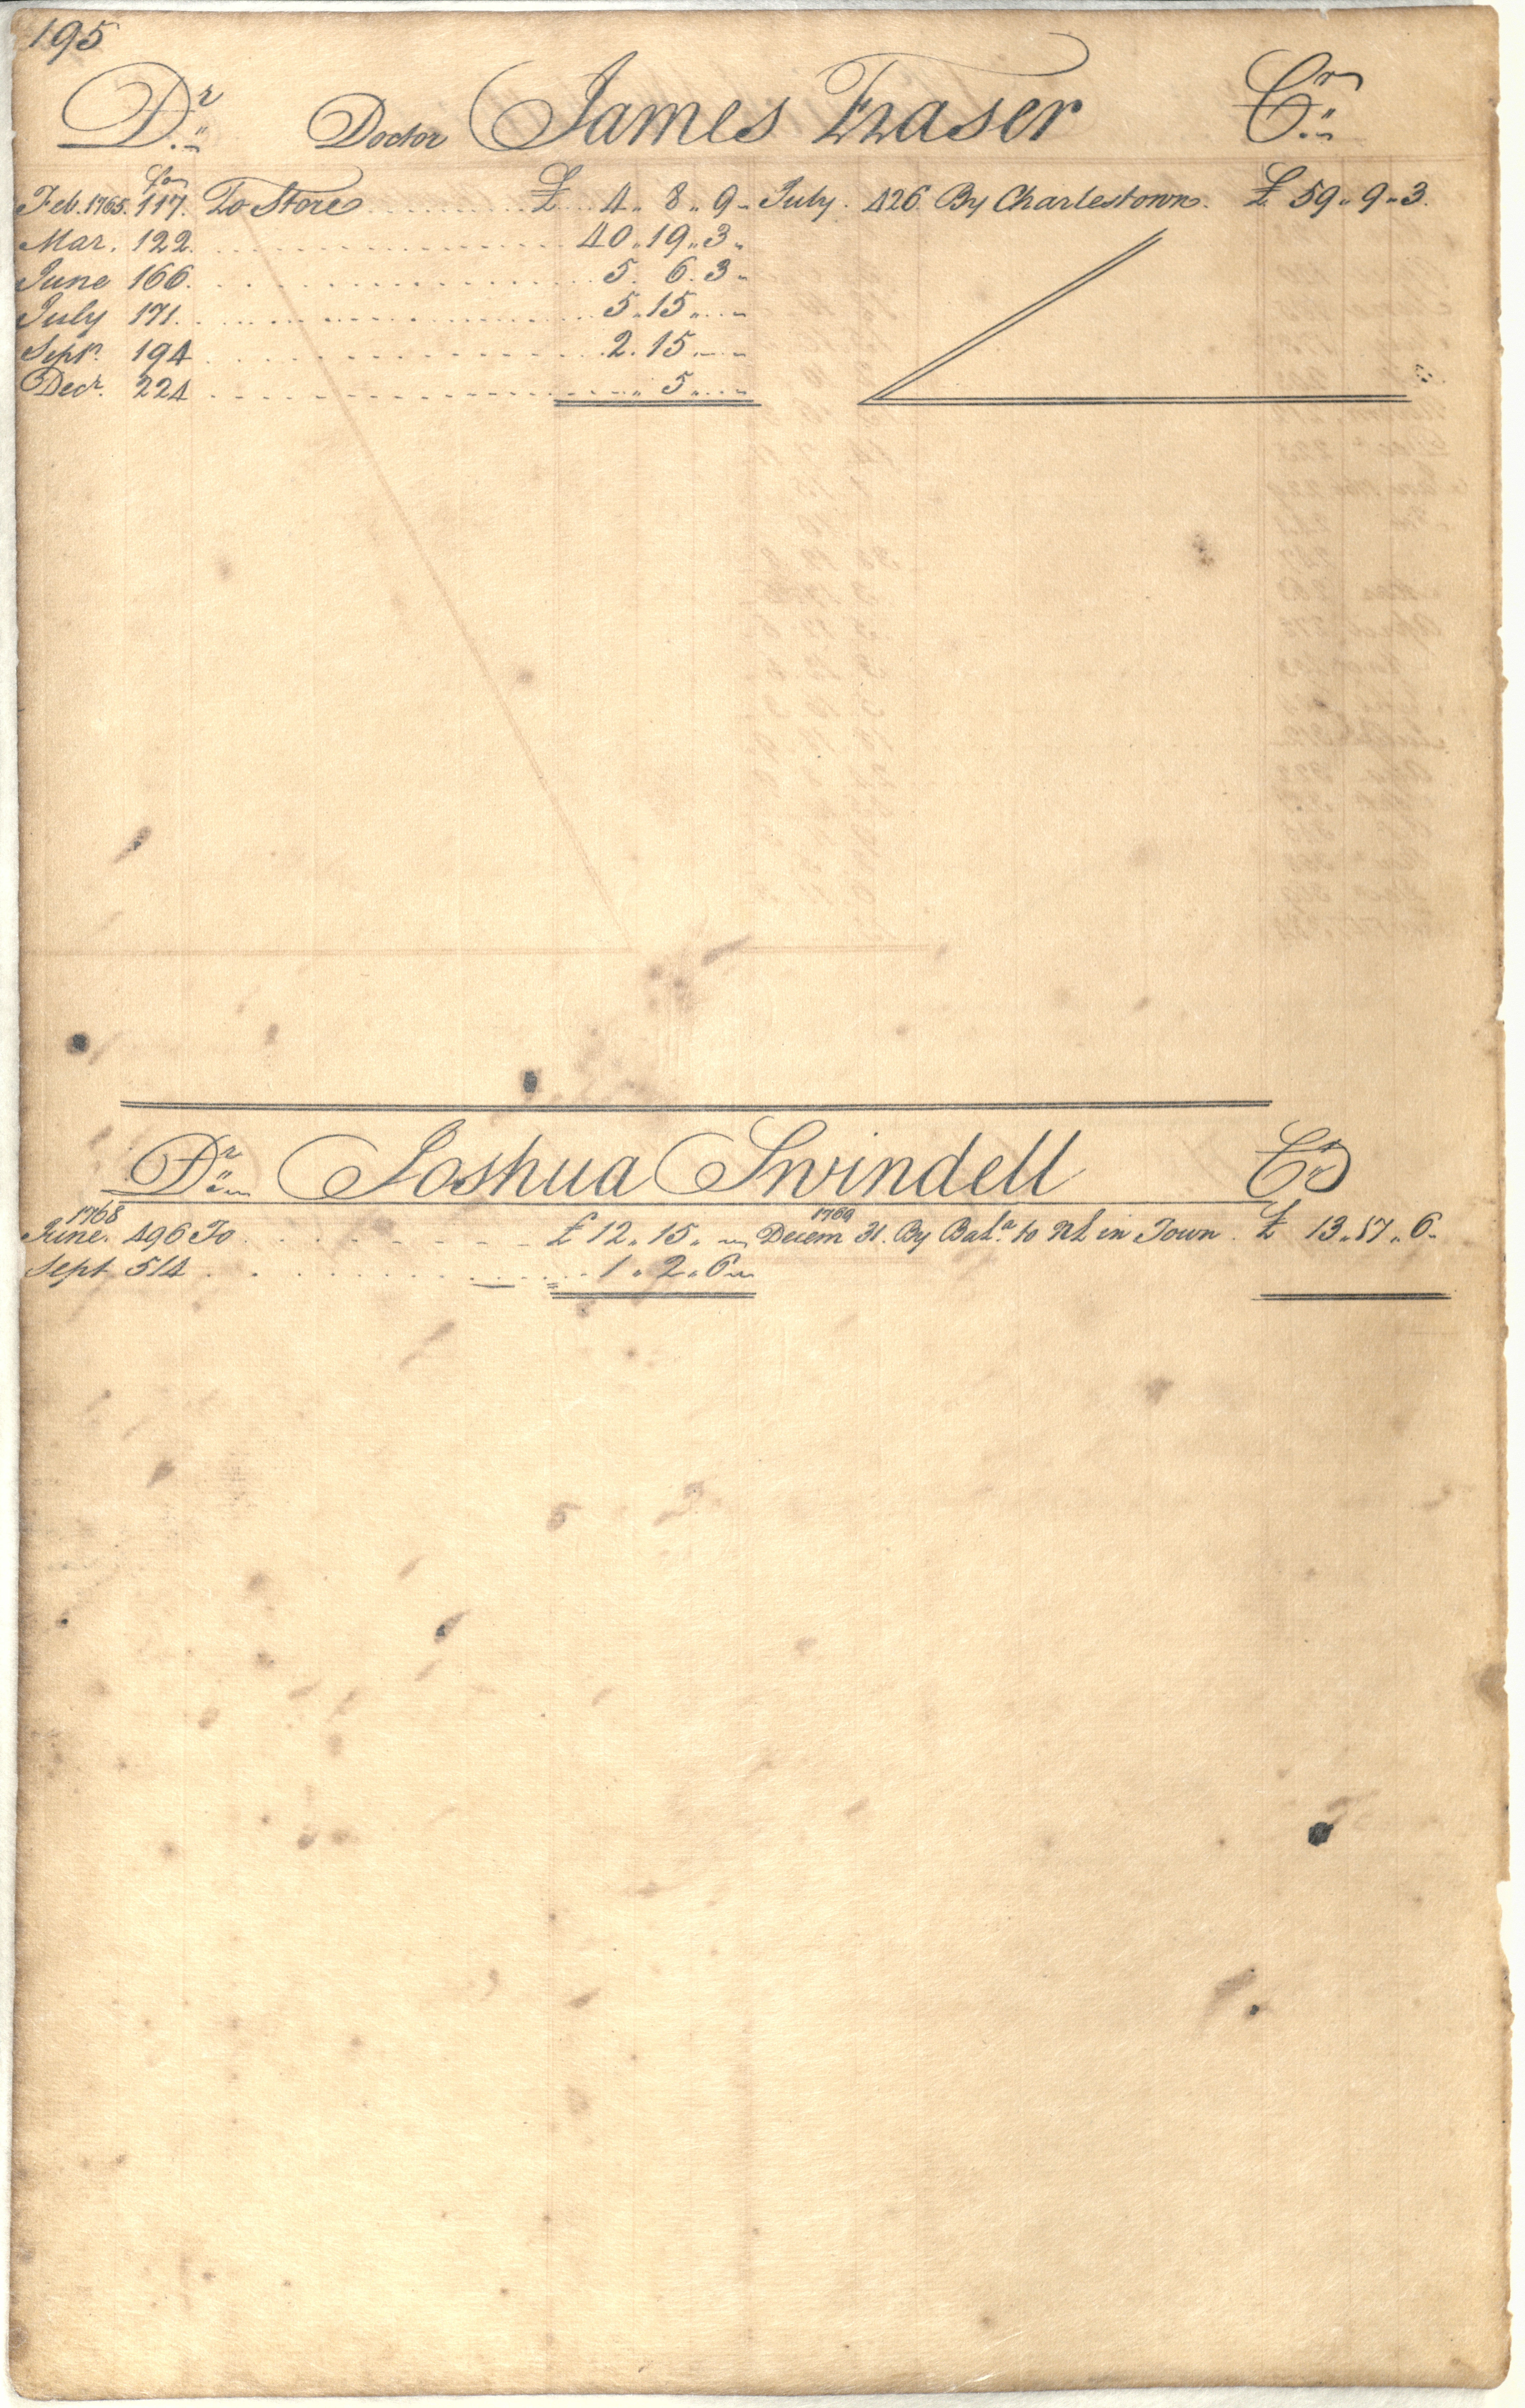 Plowden Weston's Business Ledger, page 195